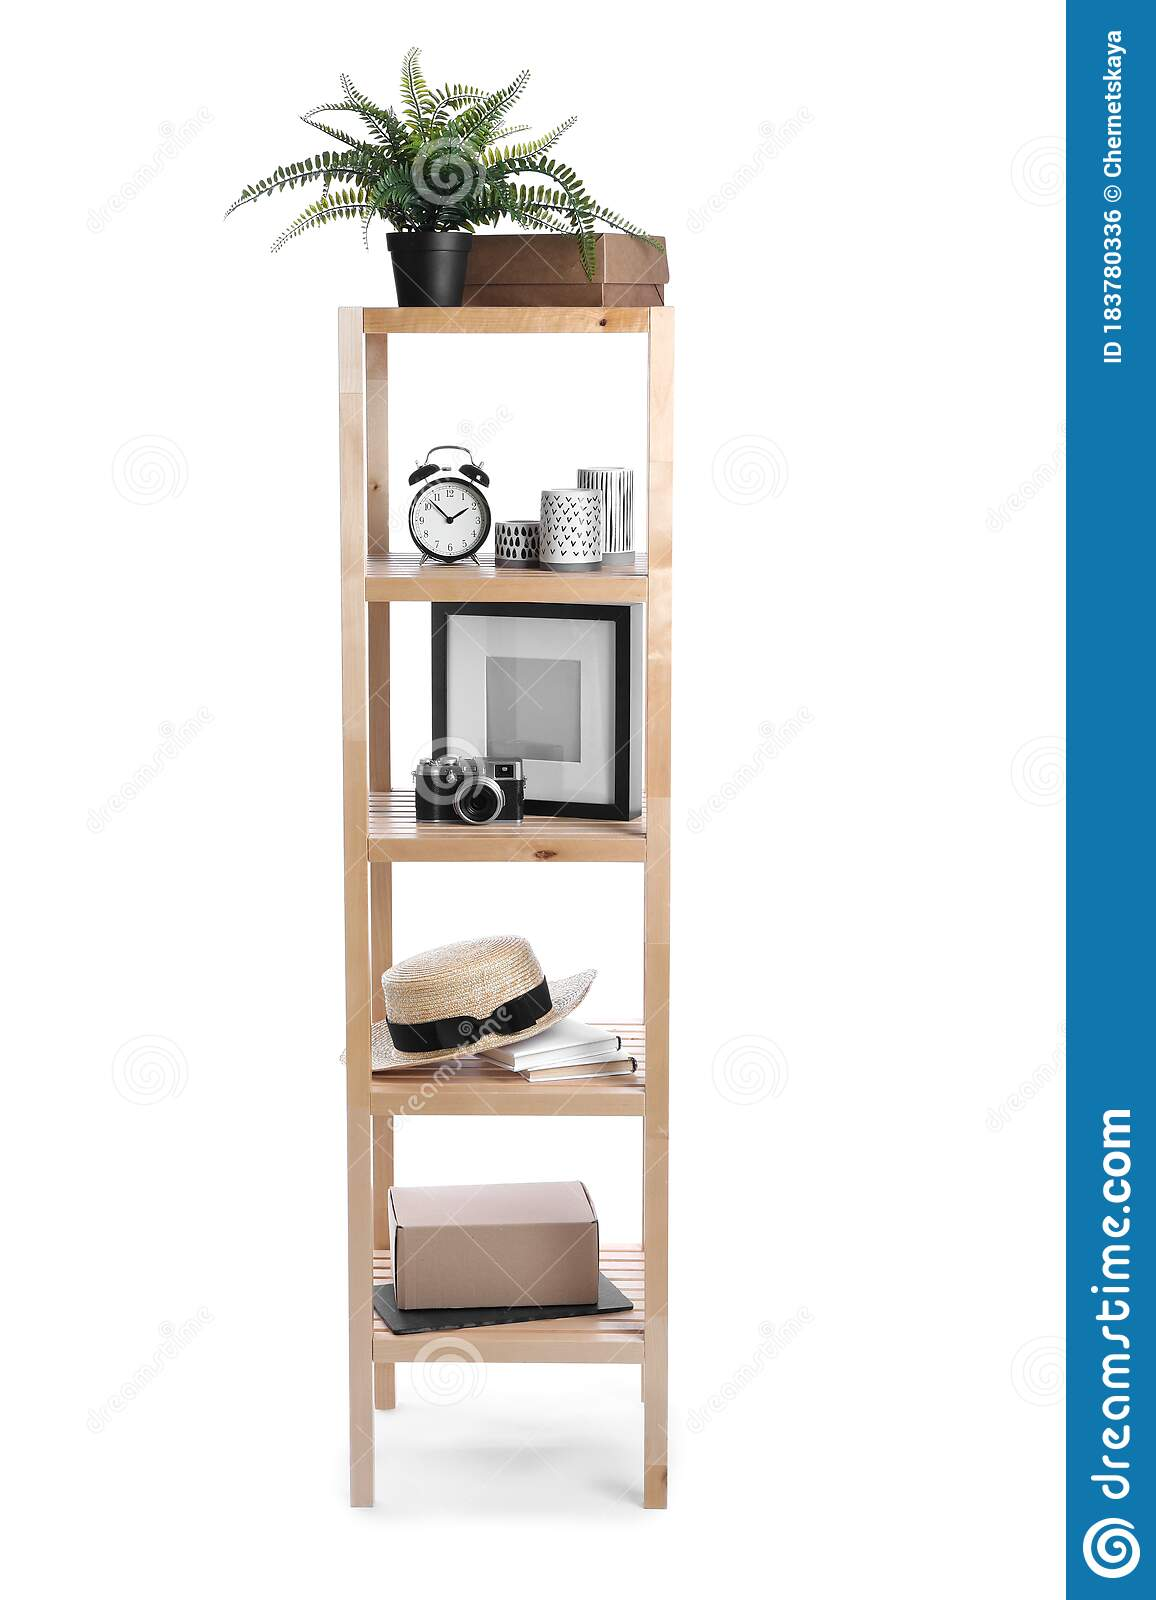 Wooden Shelving Unit With Different Items Isolated Stock Photo Image Of Office Element 183780336